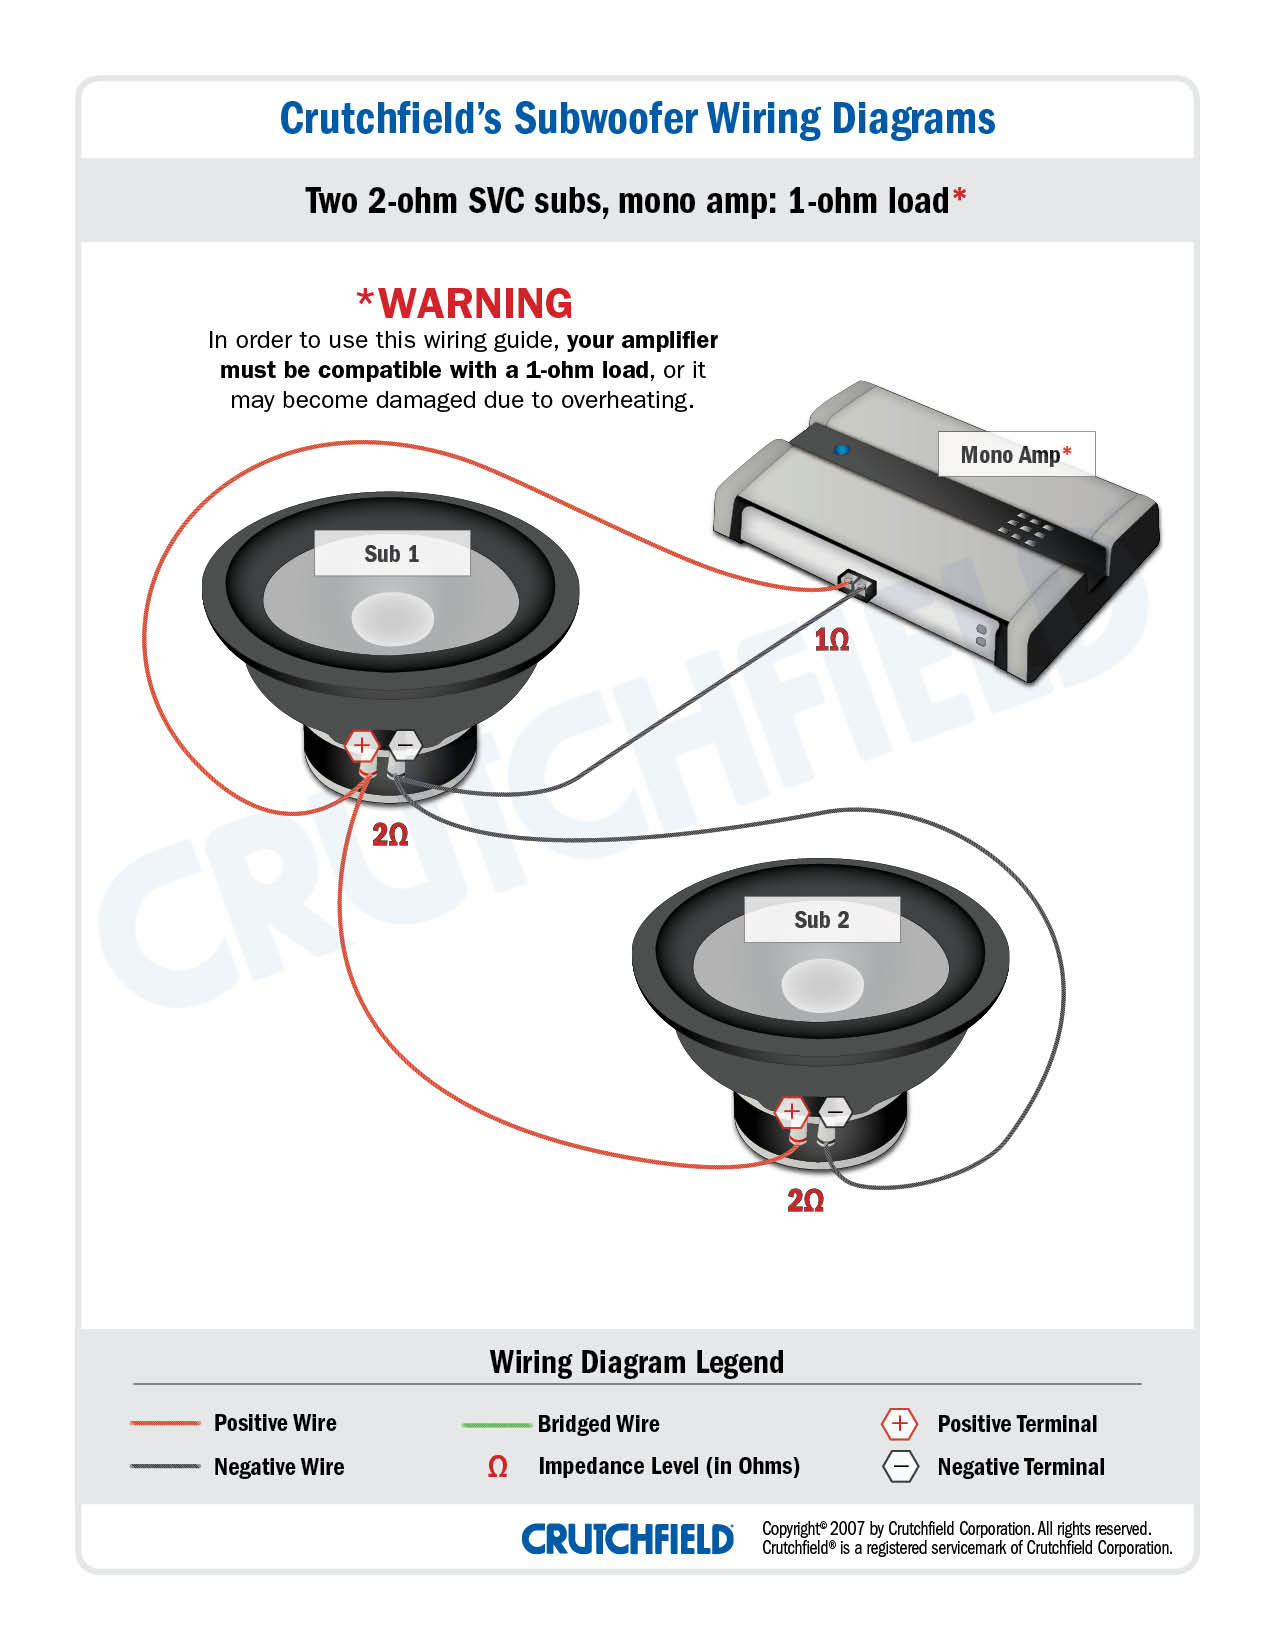 Subwoofer Wiring Diagrams — How To Wire Your Subs - Rockford Fosgate Wiring Diagram